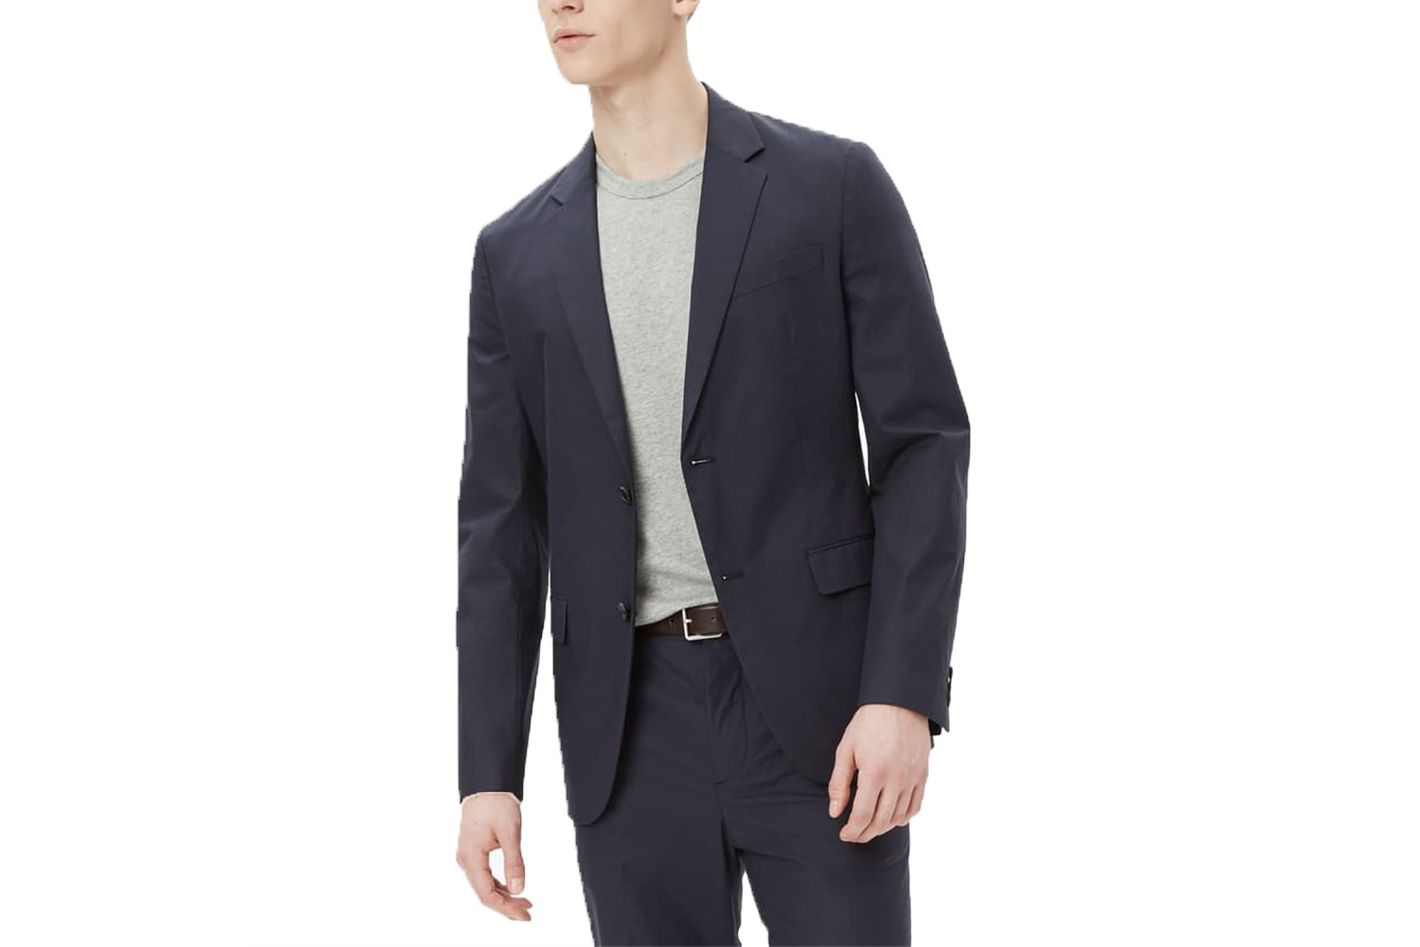 Theory Cotton Poplin Suit